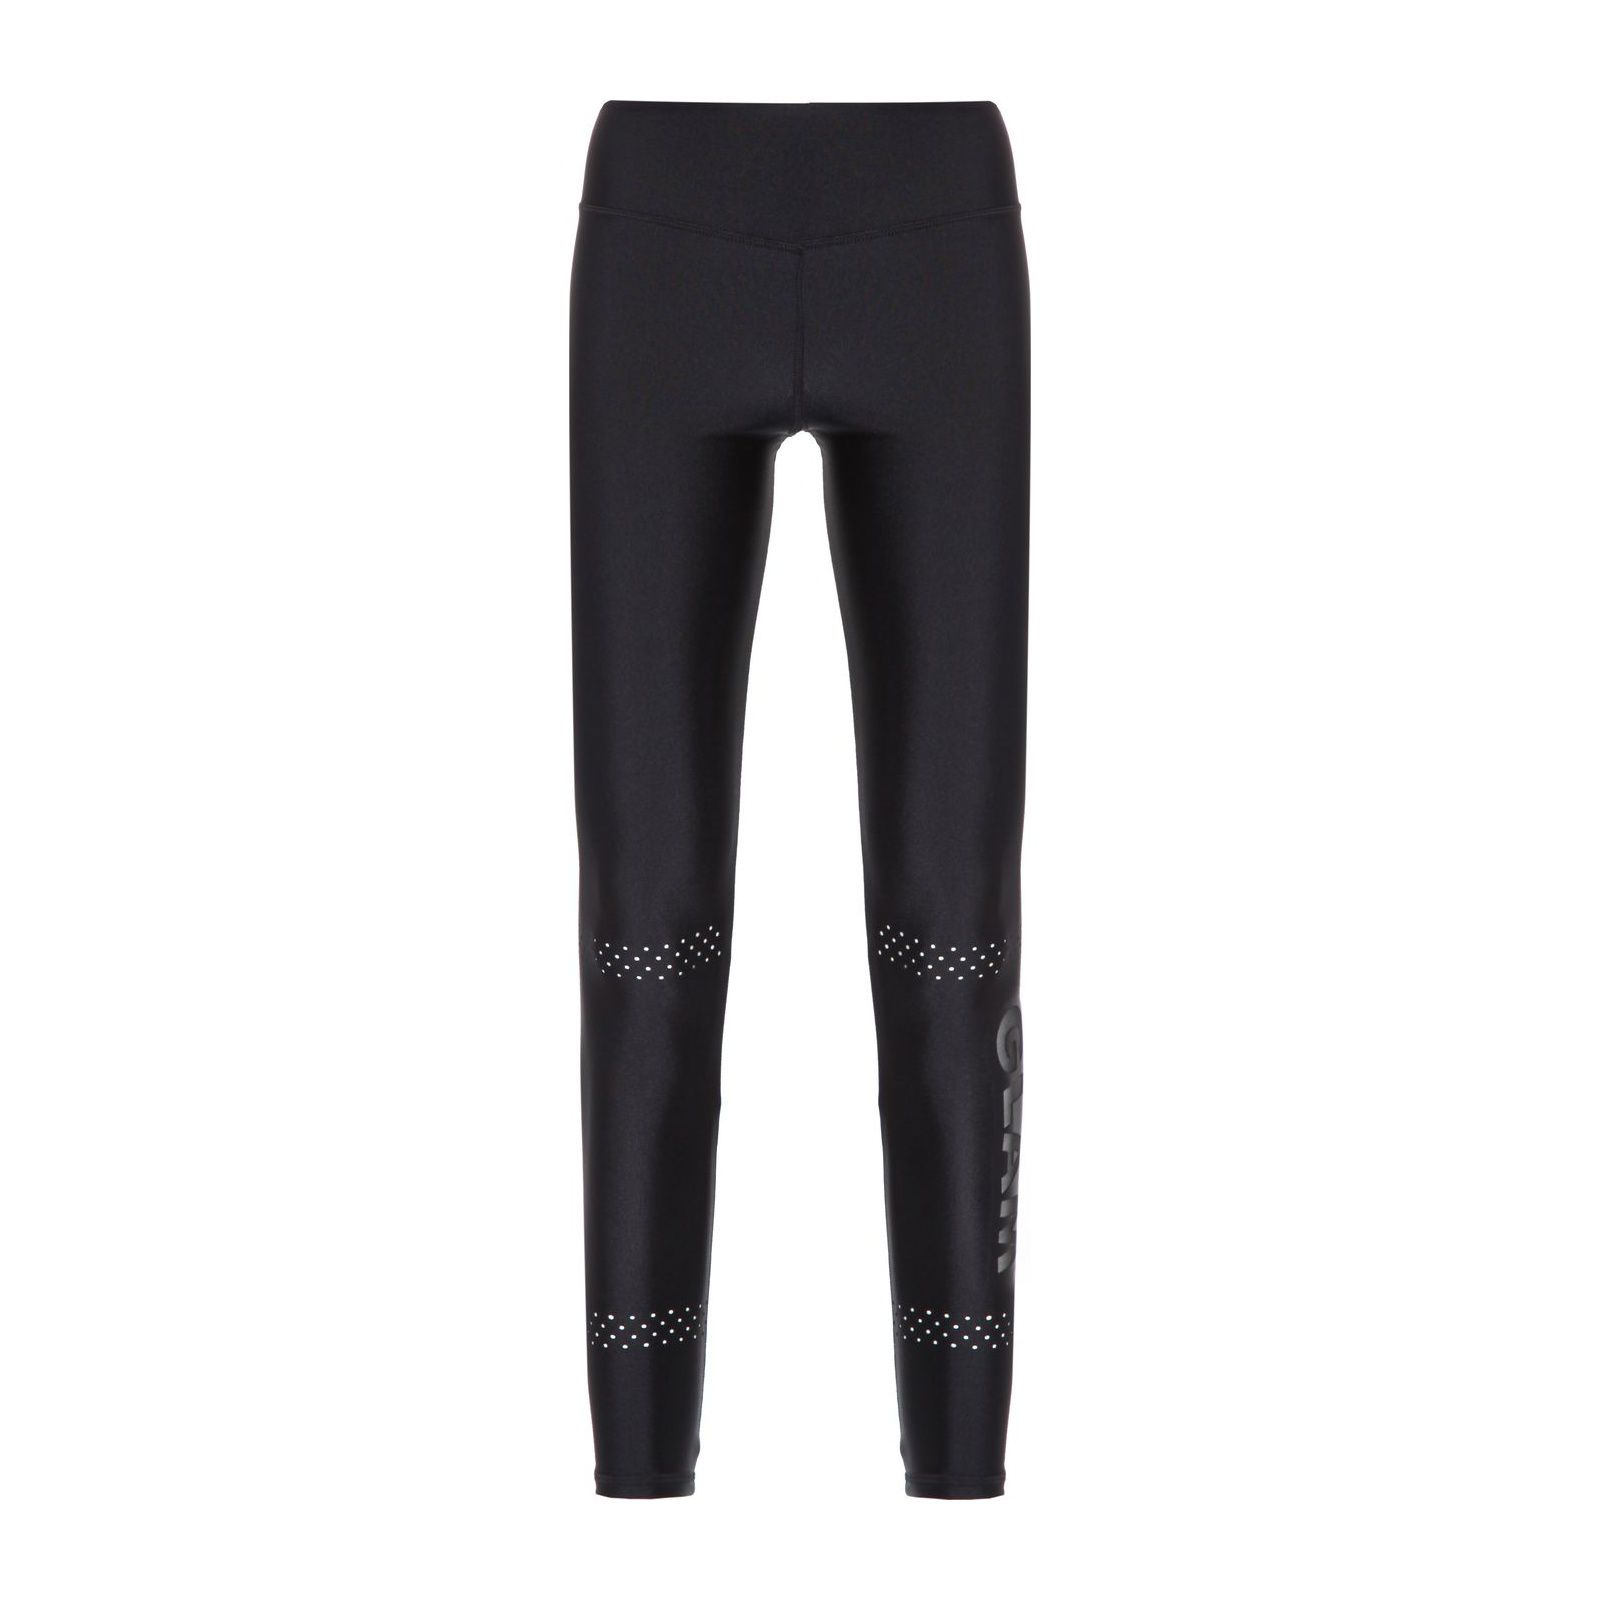 Legging Glam By Nati Vozza - Preto